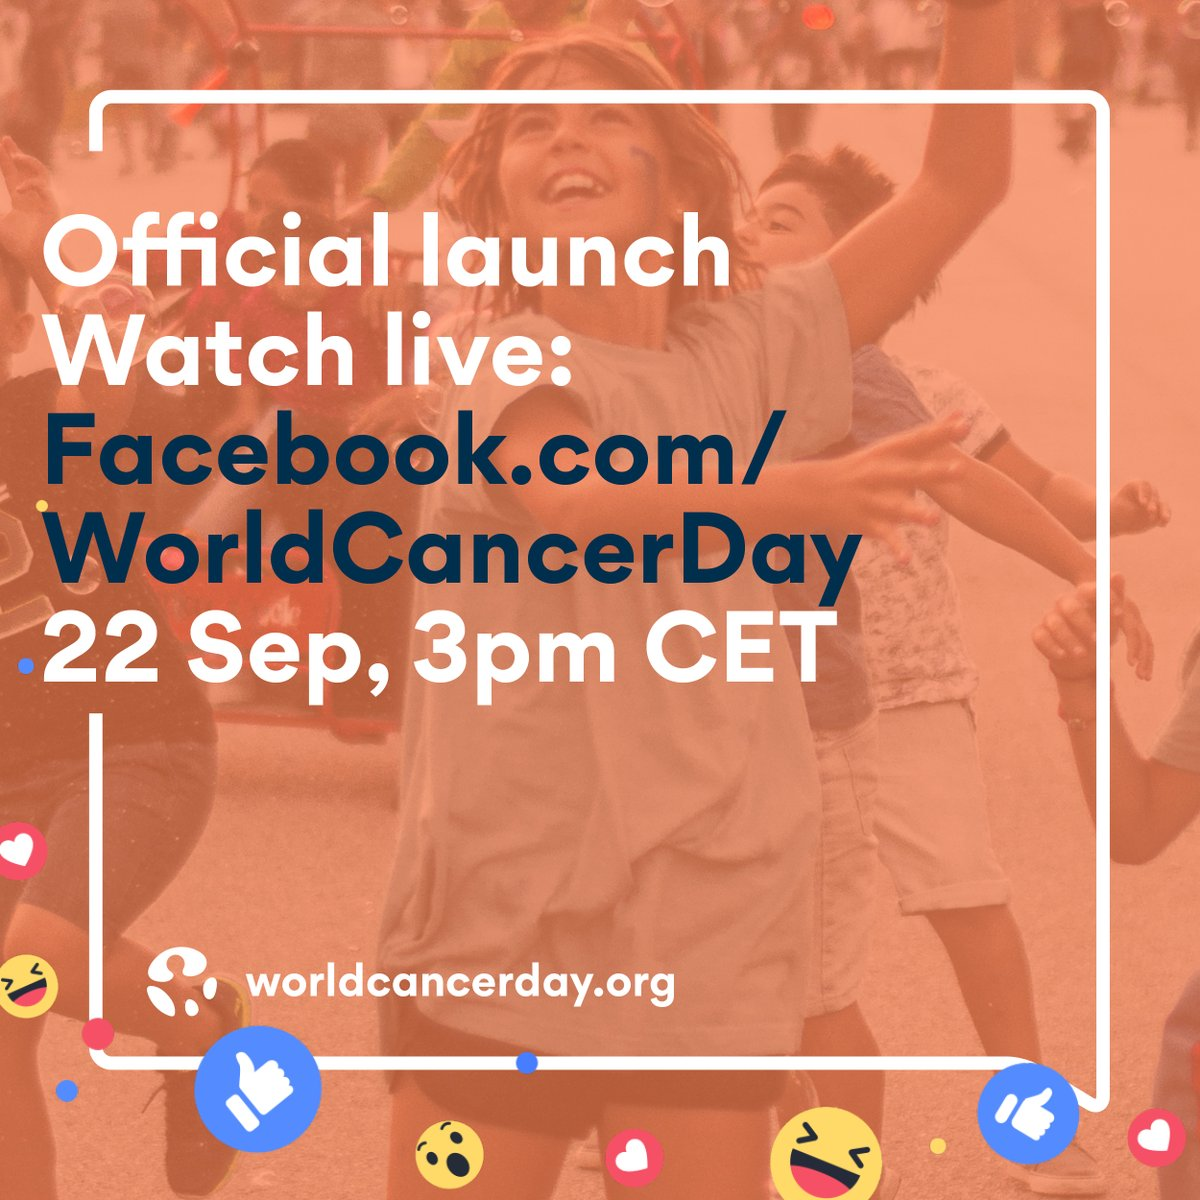 We're live! Come join us over at https://t.co/Is2SlPka4D as we get ready for the final year of the #WorldCancerDay #IAmAndIWill campaign. https://t.co/lEUIfB2hyR